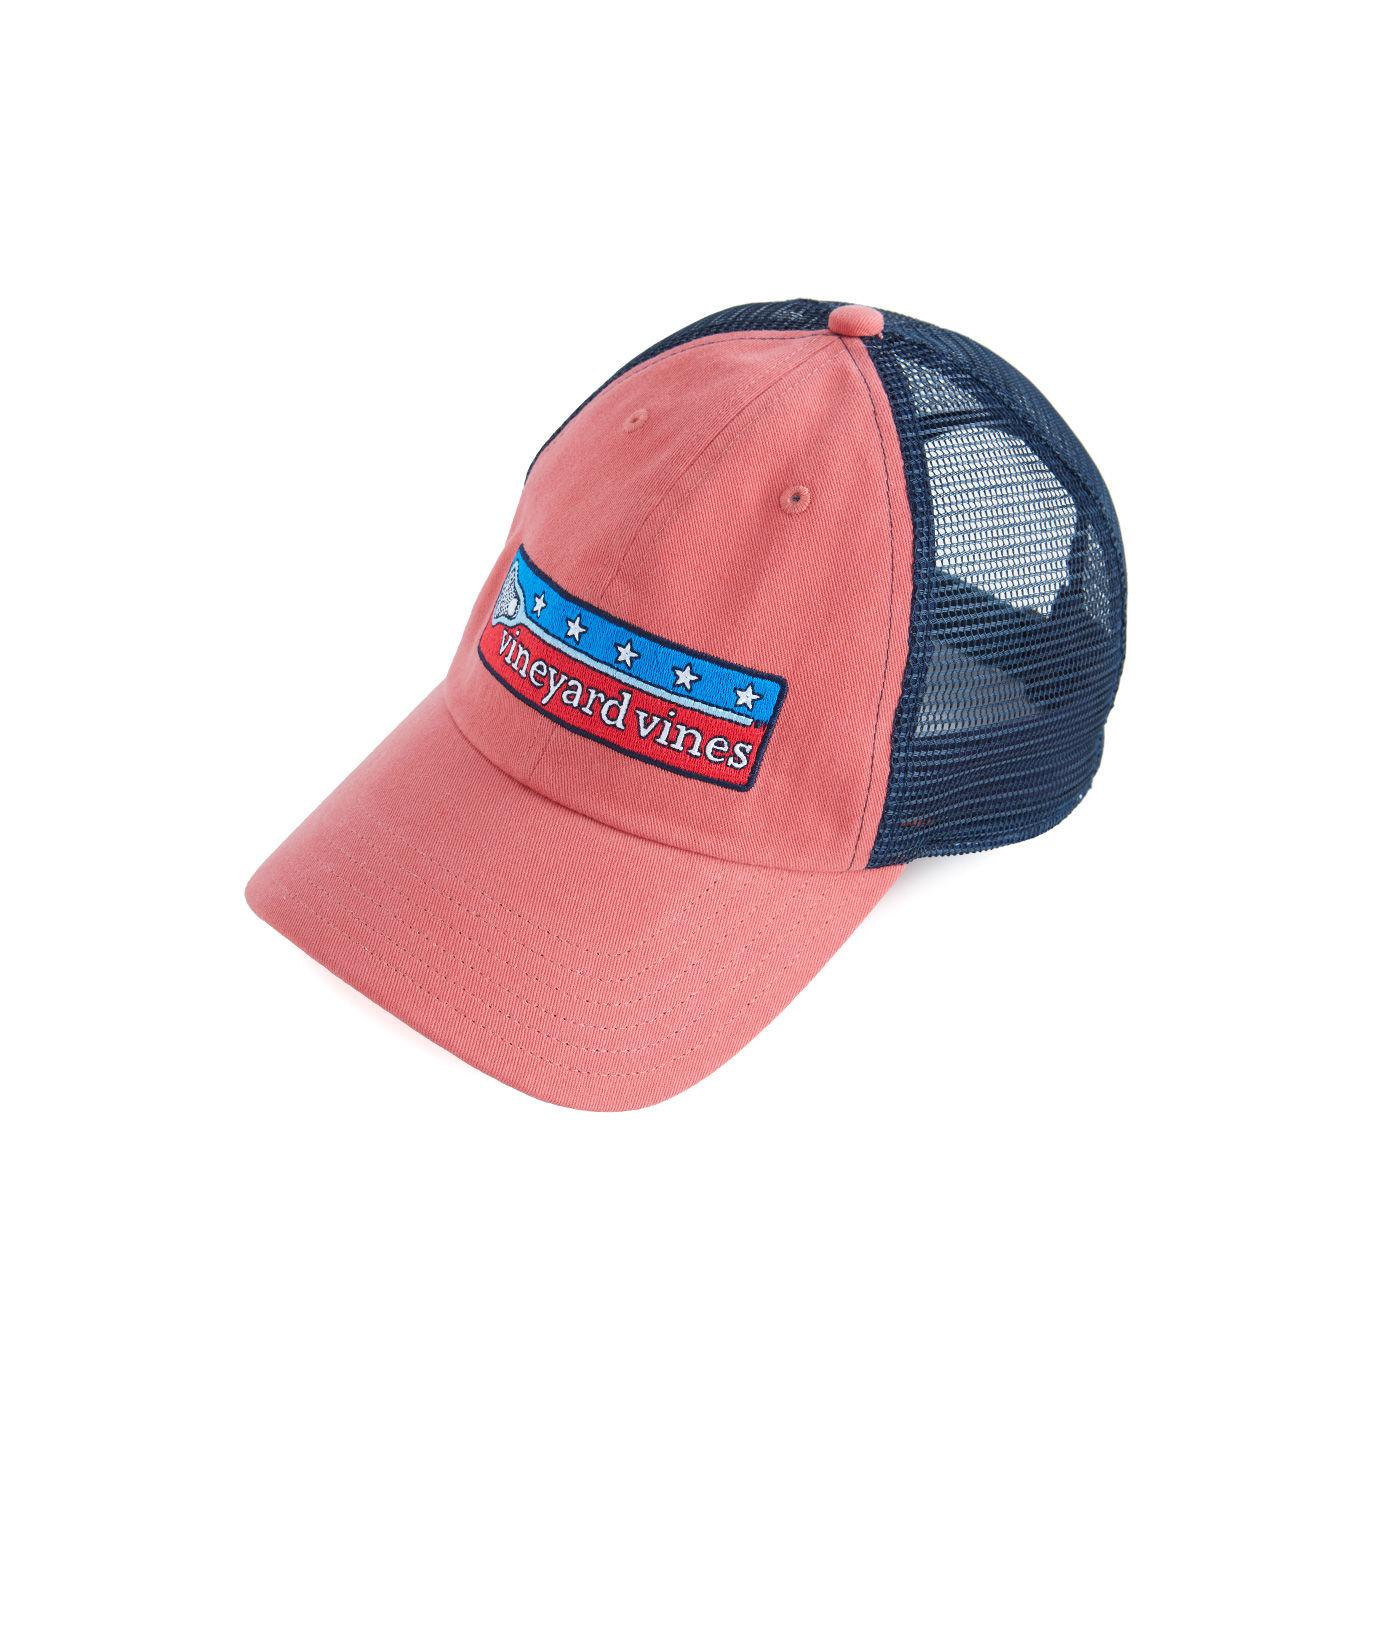 88df4e20a27 Lyst - Vineyard Vines Low Profile Lax Patch Trucker Hat in Red for Men